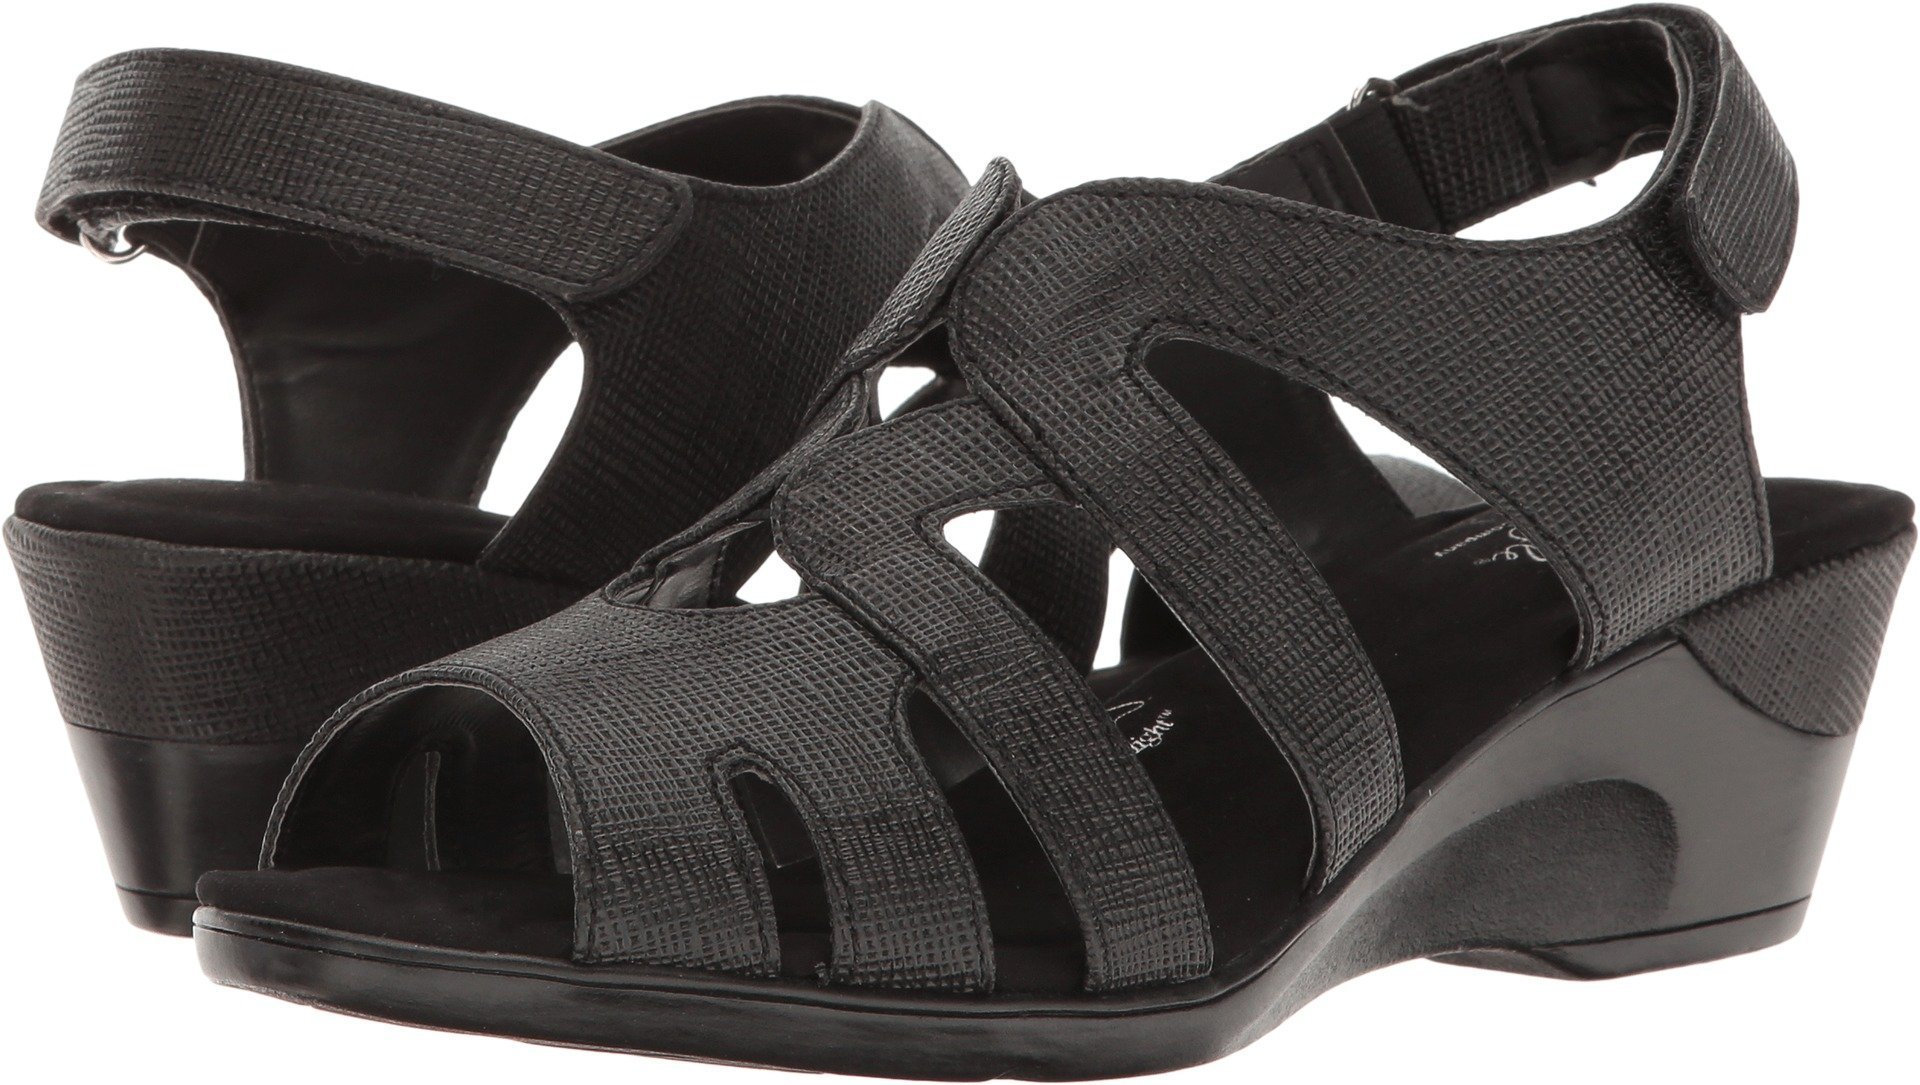 Soft Style by Hush Puppies Women's Patsie Wedge Sandal, Black Cambric, 7.5 N US